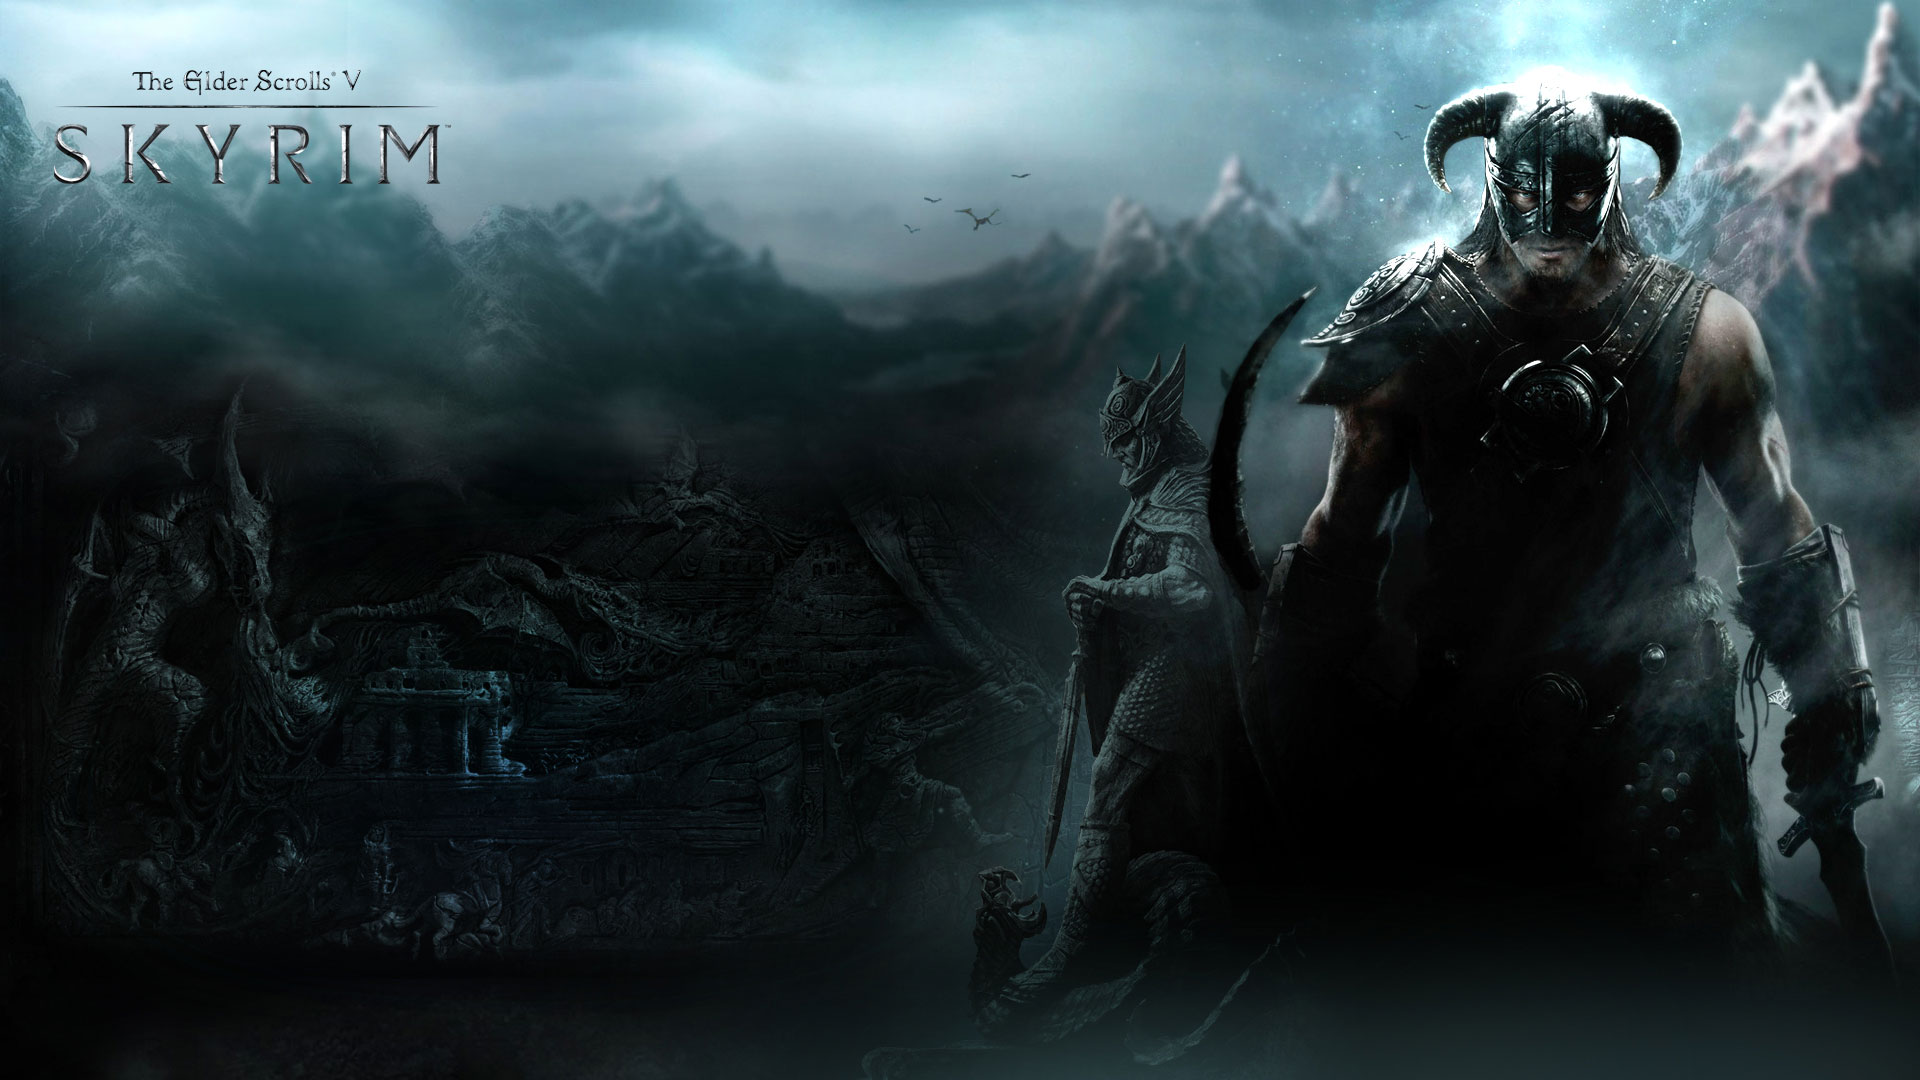 Collection of Skyrim Wallpapers on HDWallpapers